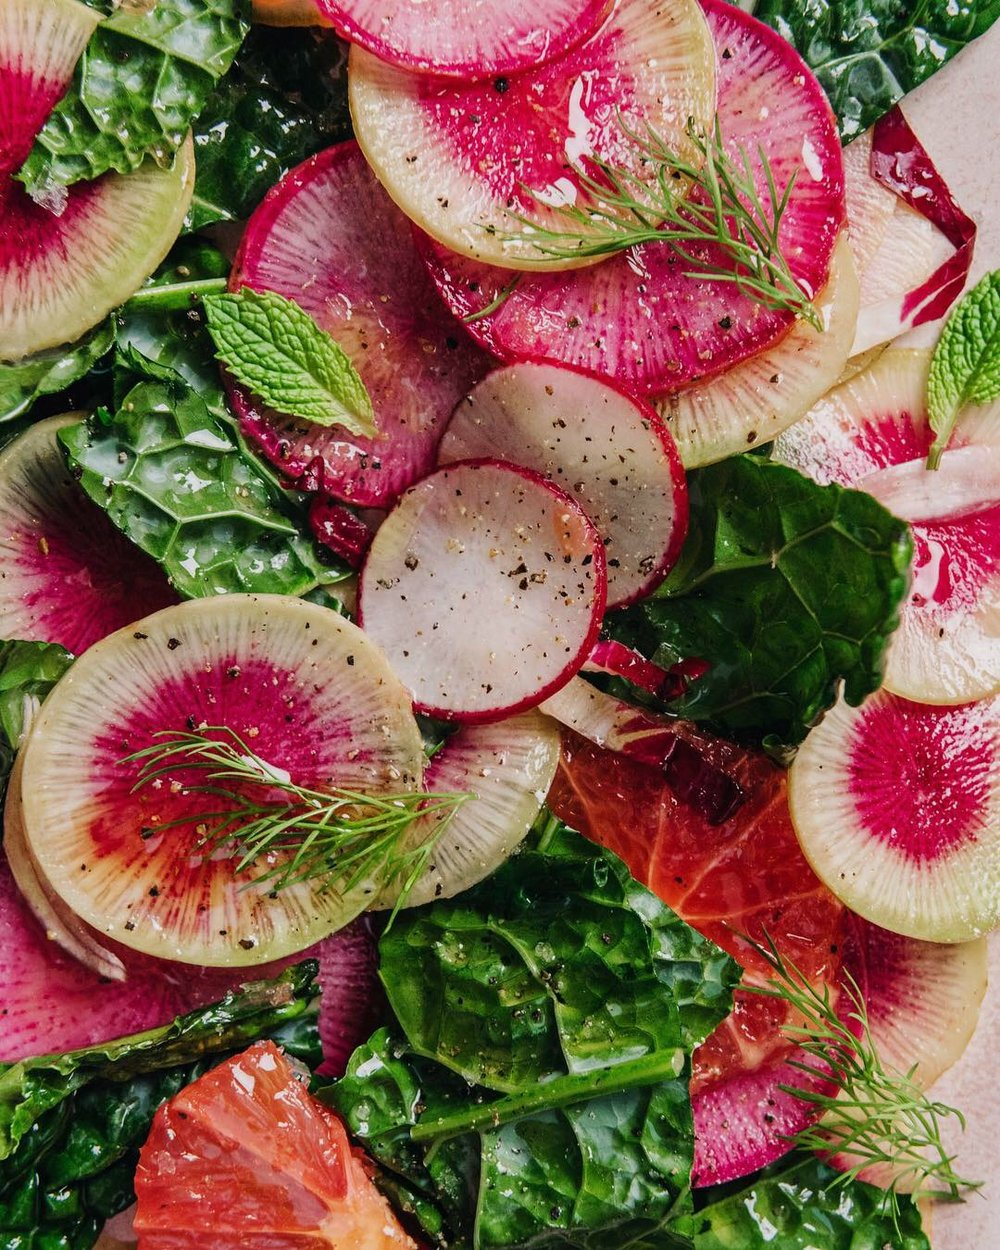 WINTER RADISH AND KALE SALAD WITH CITRUS AND HERBS #recipe #easyrecipe #wintersalads #watermelonradish #foodstyling #sarahcopeland #edibleliving